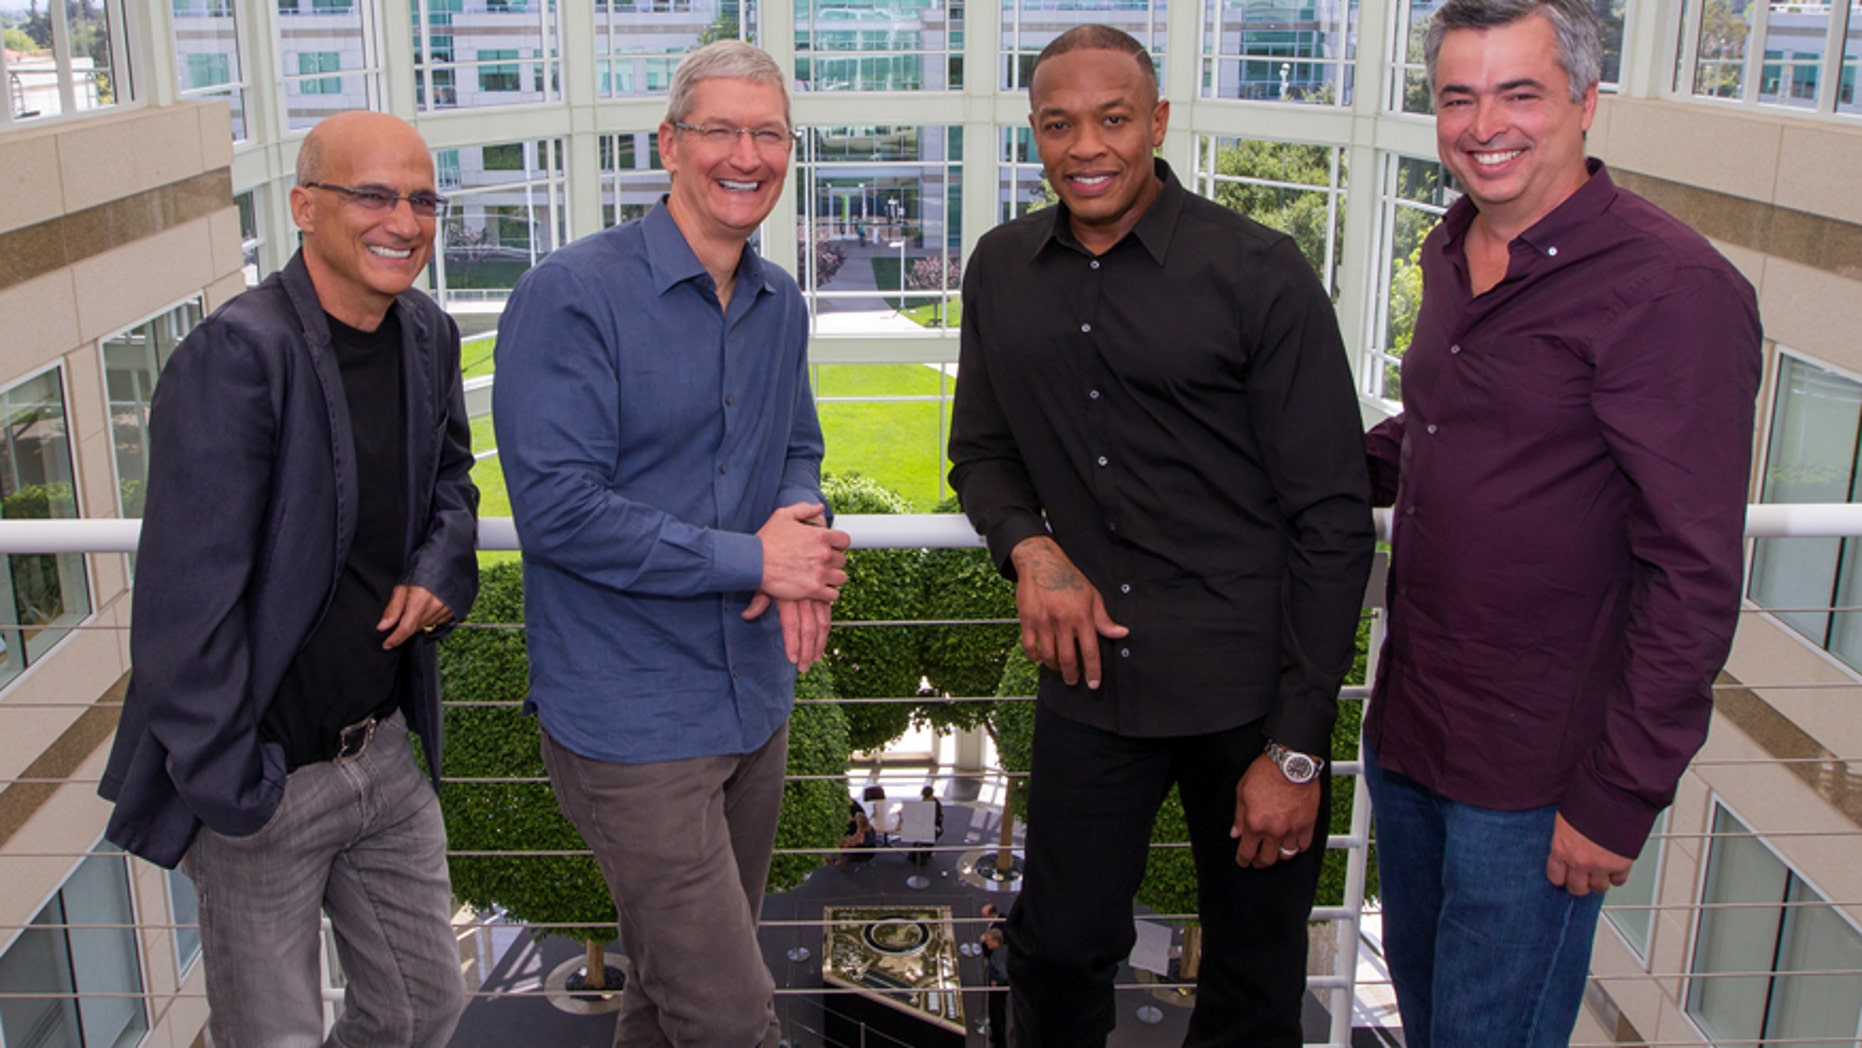 In this image provided by Apple, from left to right, music entrepreneur and Beats co-founder Jimmy Iovine, Apple CEO Tim Cook, Beats co-founder Dr. Dre, and Apple senior vice president Eddy Cue pose together at Apple headquarters in Cupertino, Calif., Wednesday, May 28, 2014. Apple is striking a new chord with a $3 billion acquisition of Beats Electronics, a headphone and music streaming specialist that also brings the swagger of rapper Dr. Dre and recording impresario Jimmy Iovine.